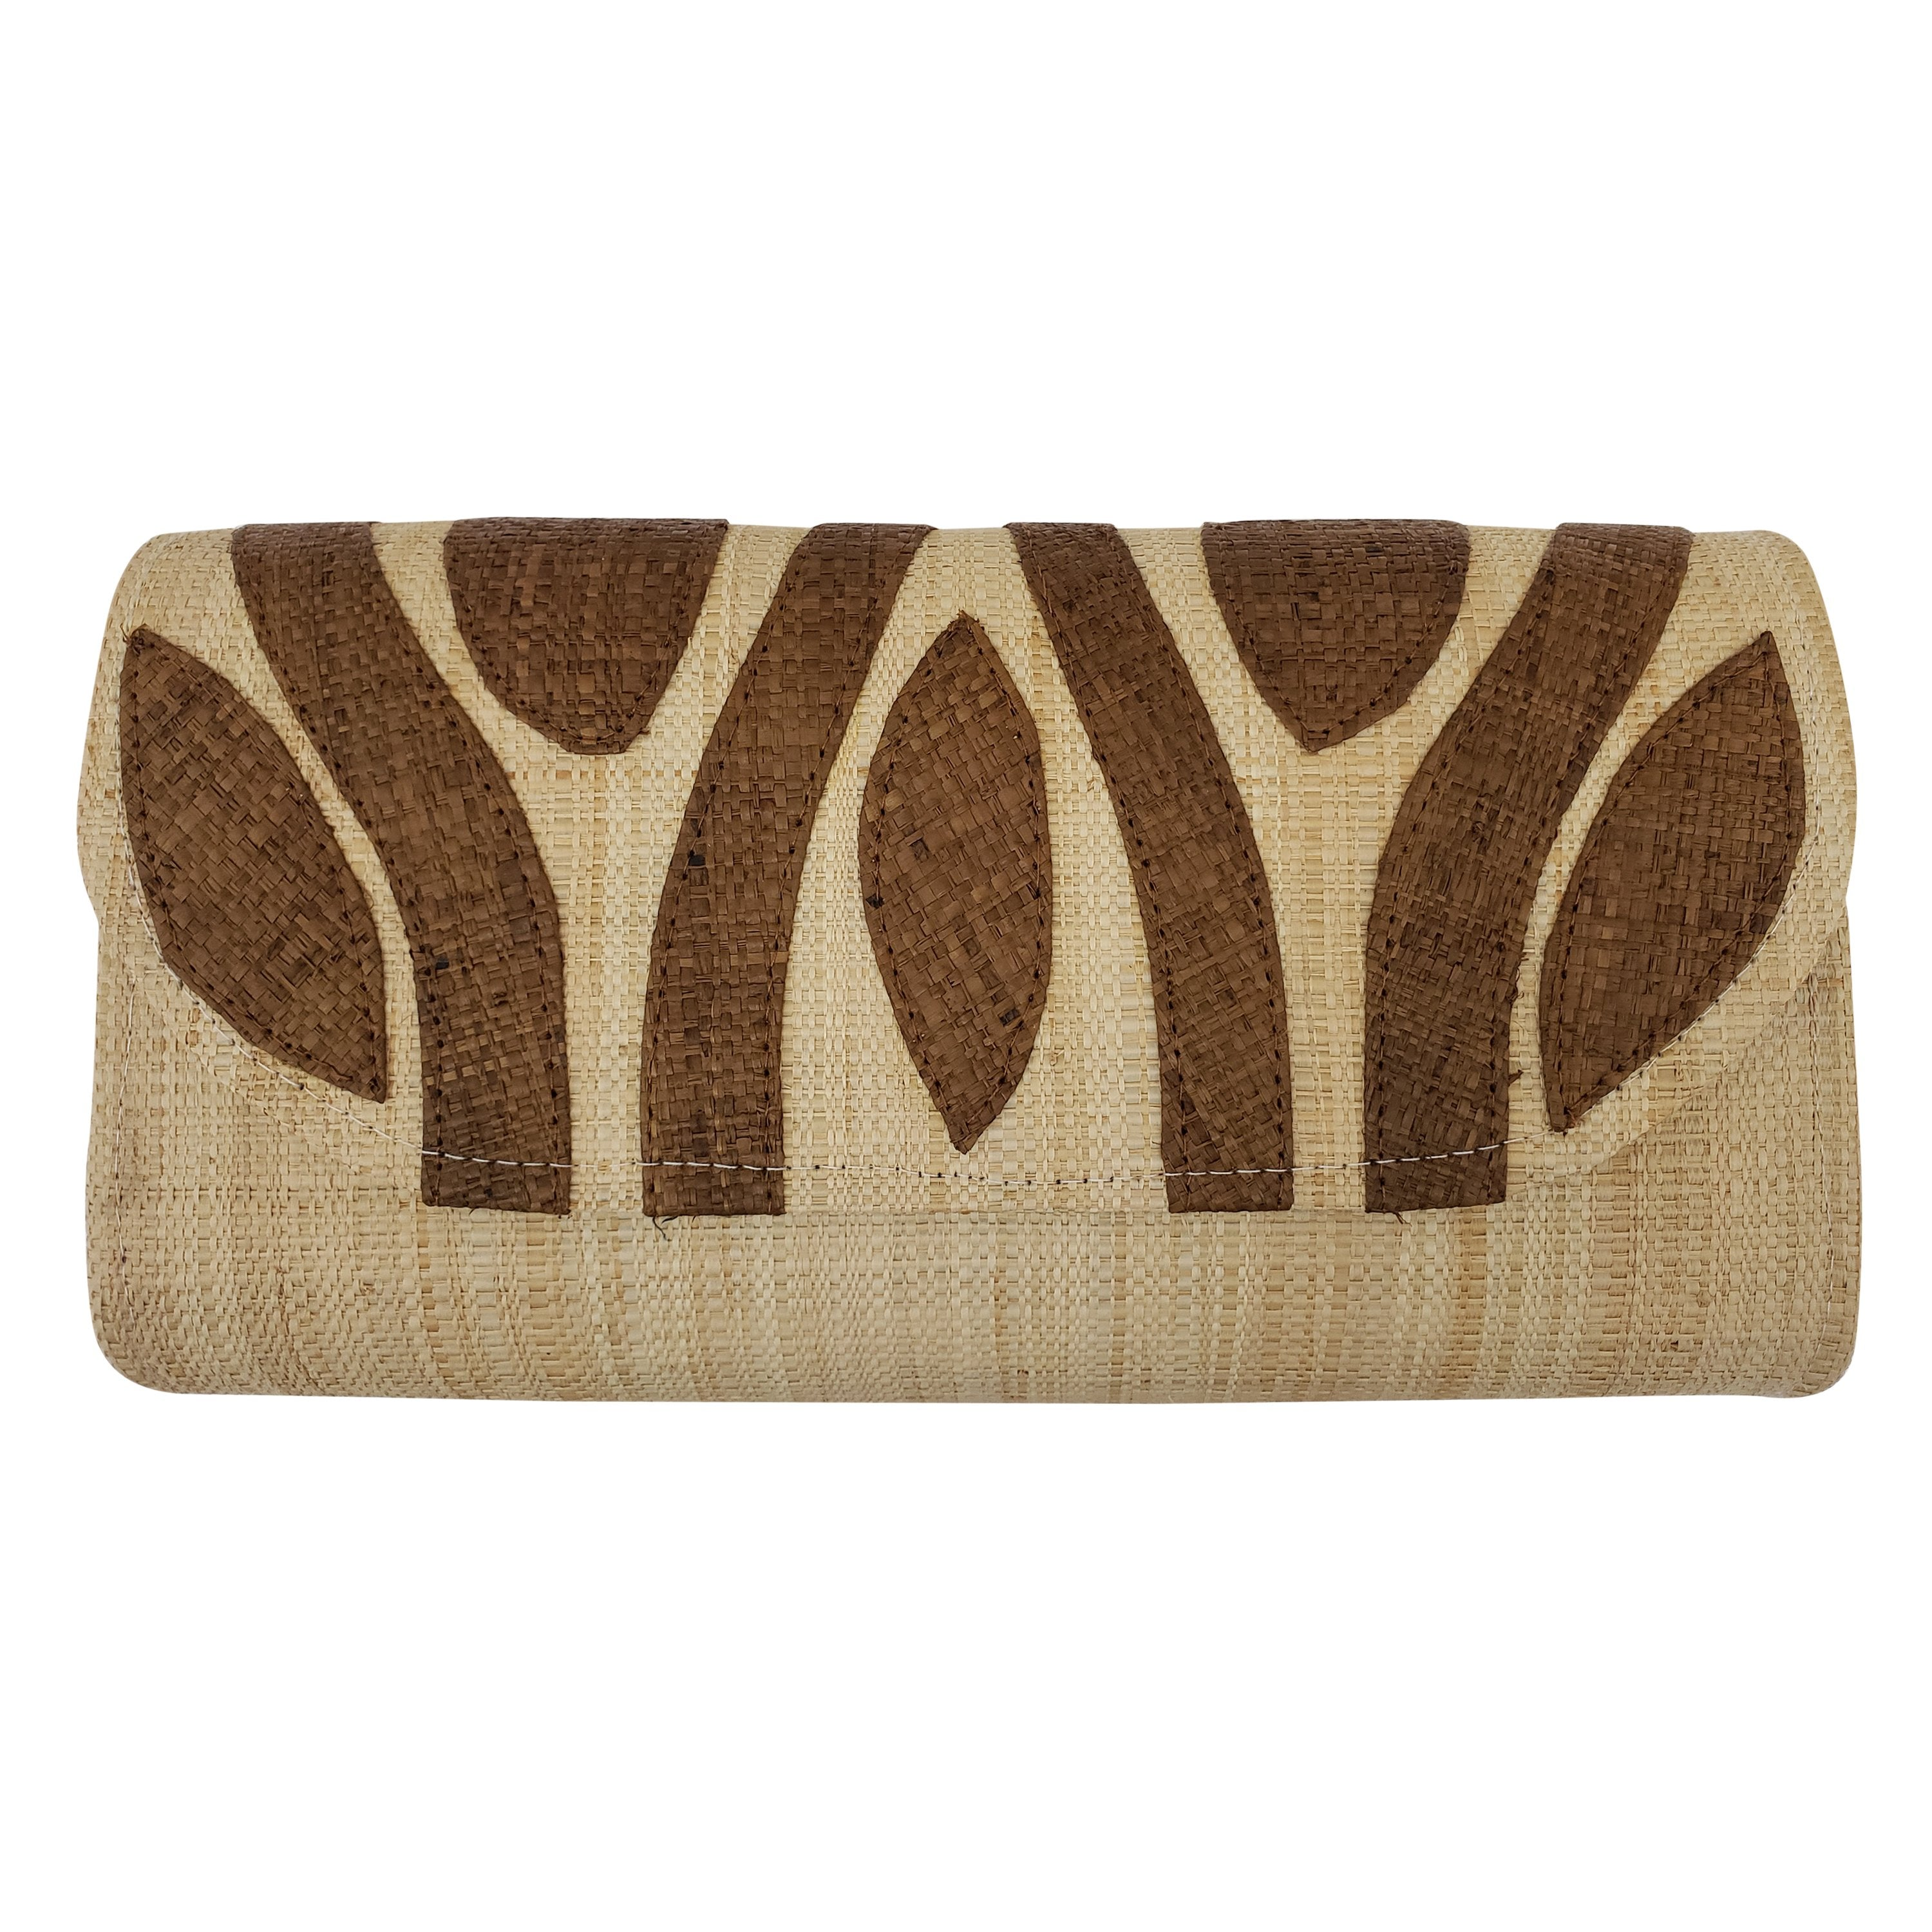 Authentic Handwoven Natural Madagascar Raffia Clutch with Brown Accents